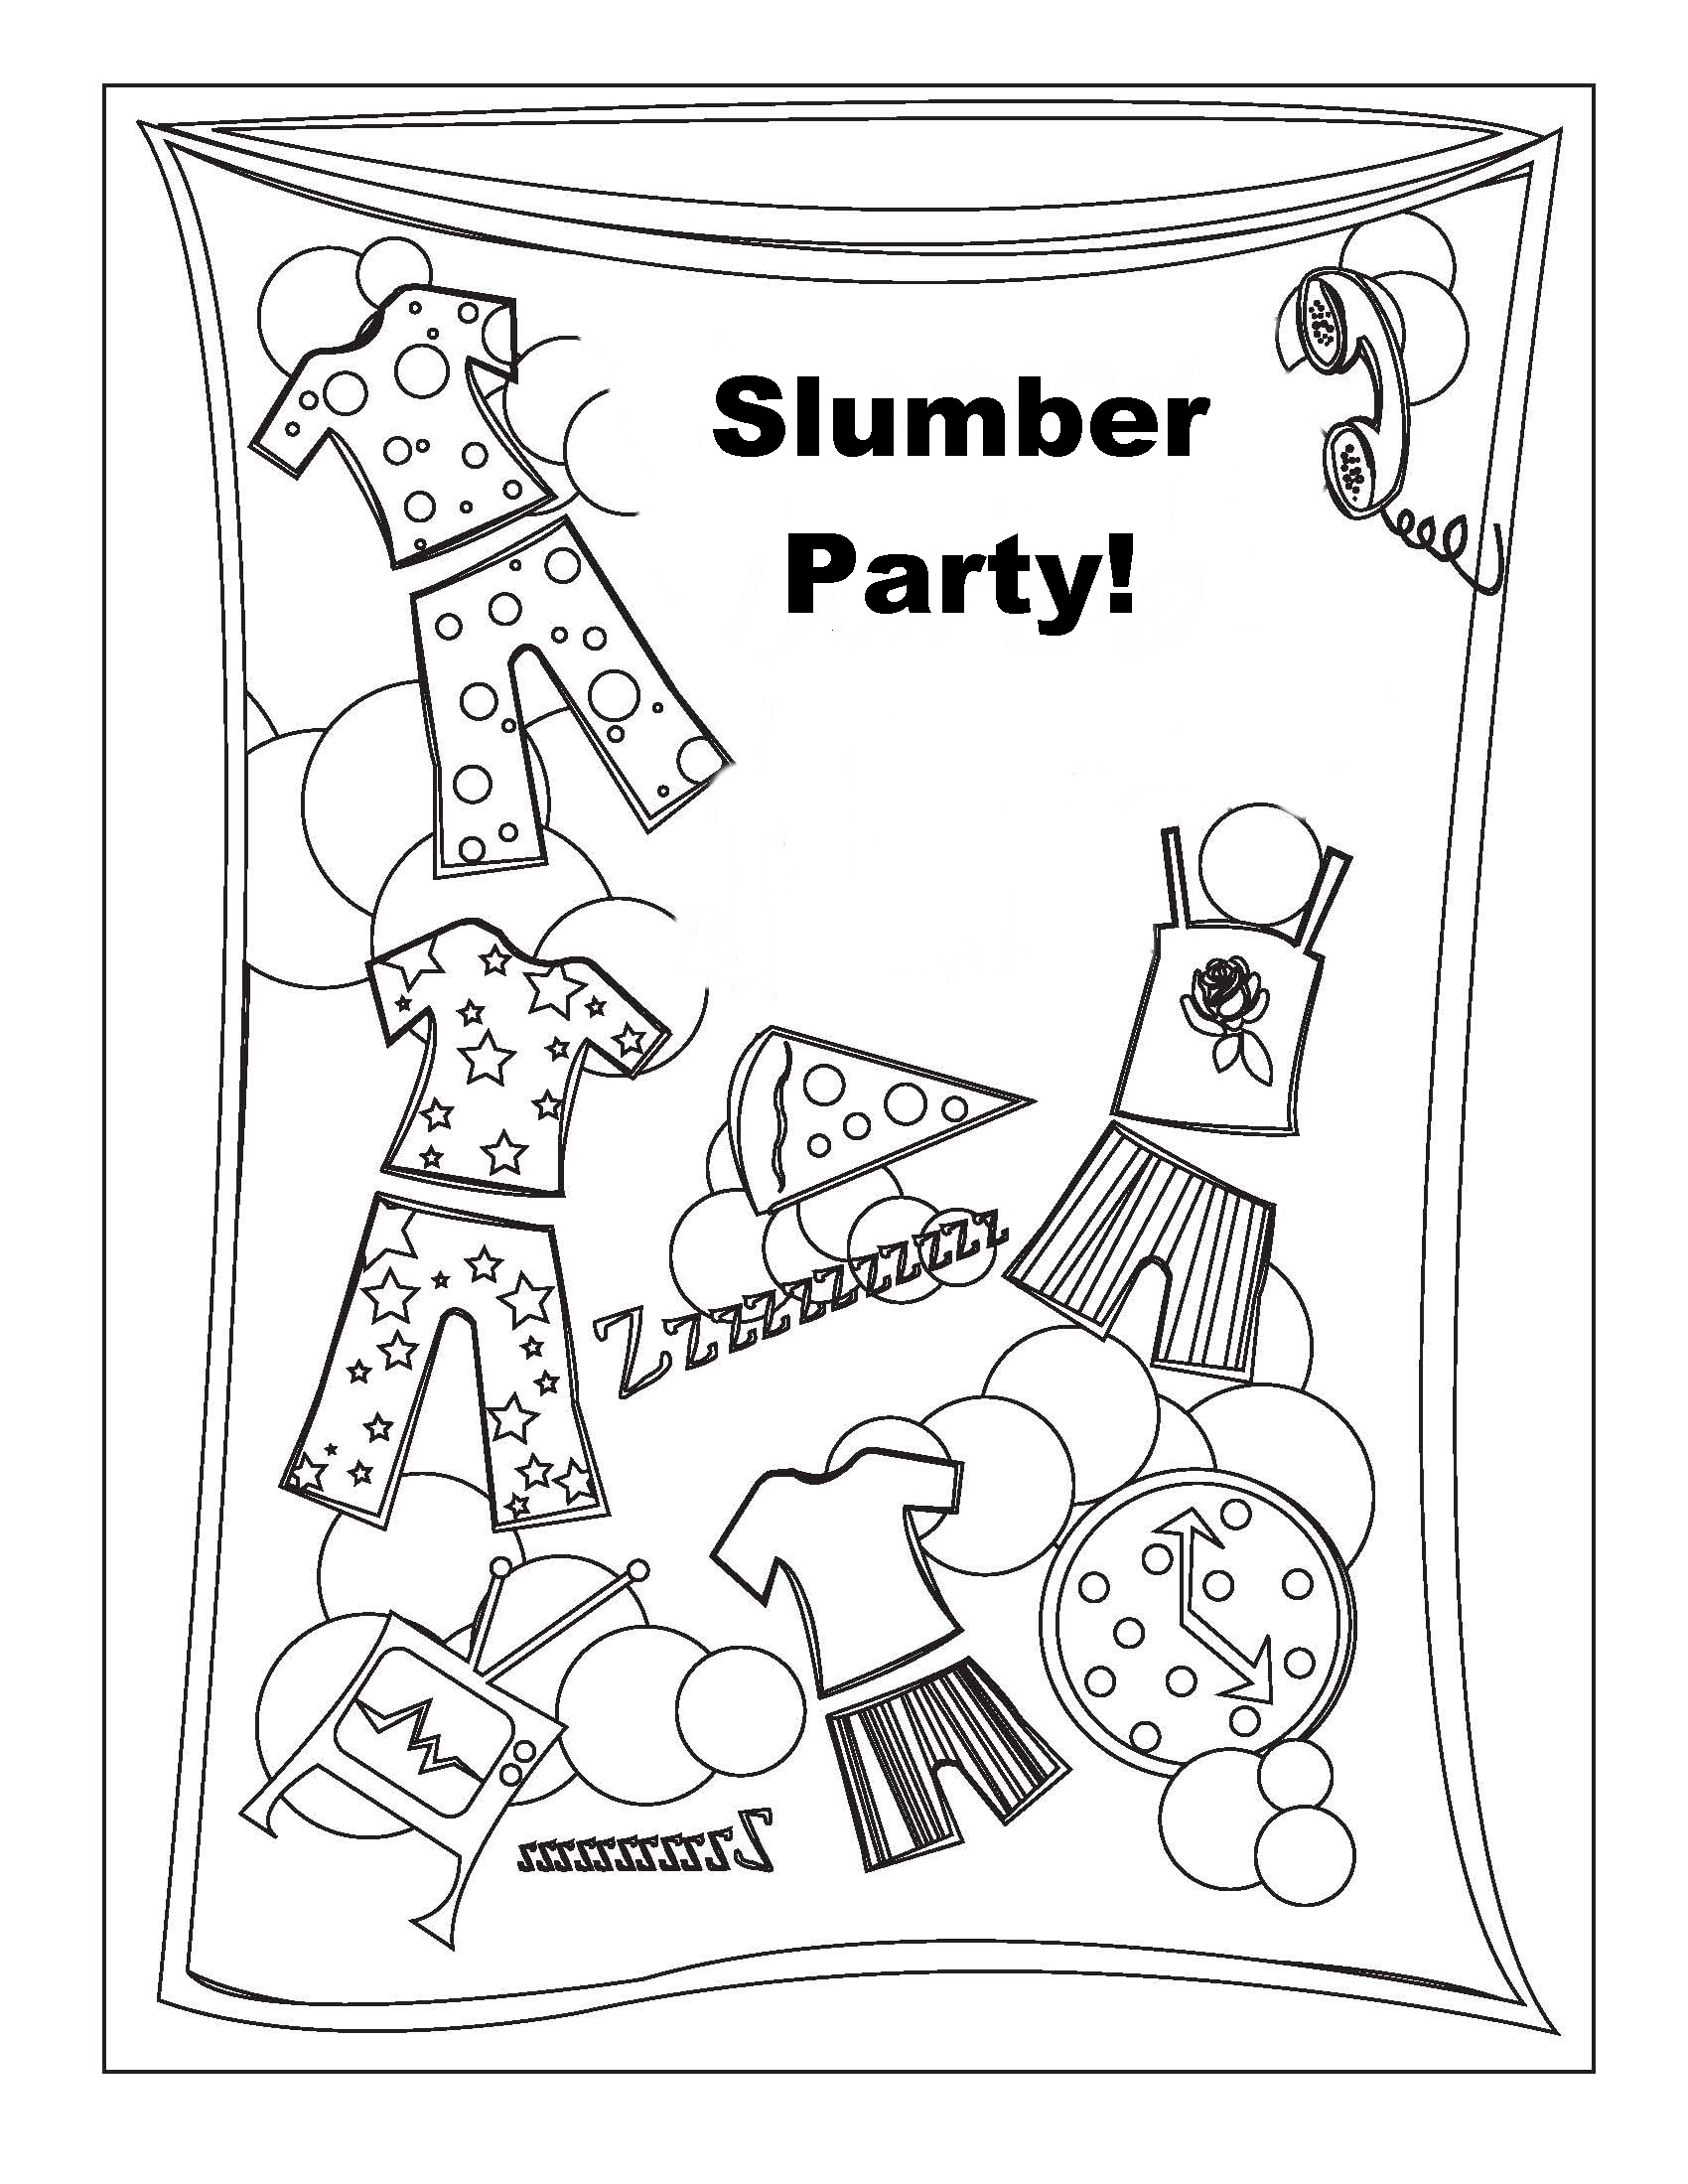 pajama theme coloring pages - photo#29